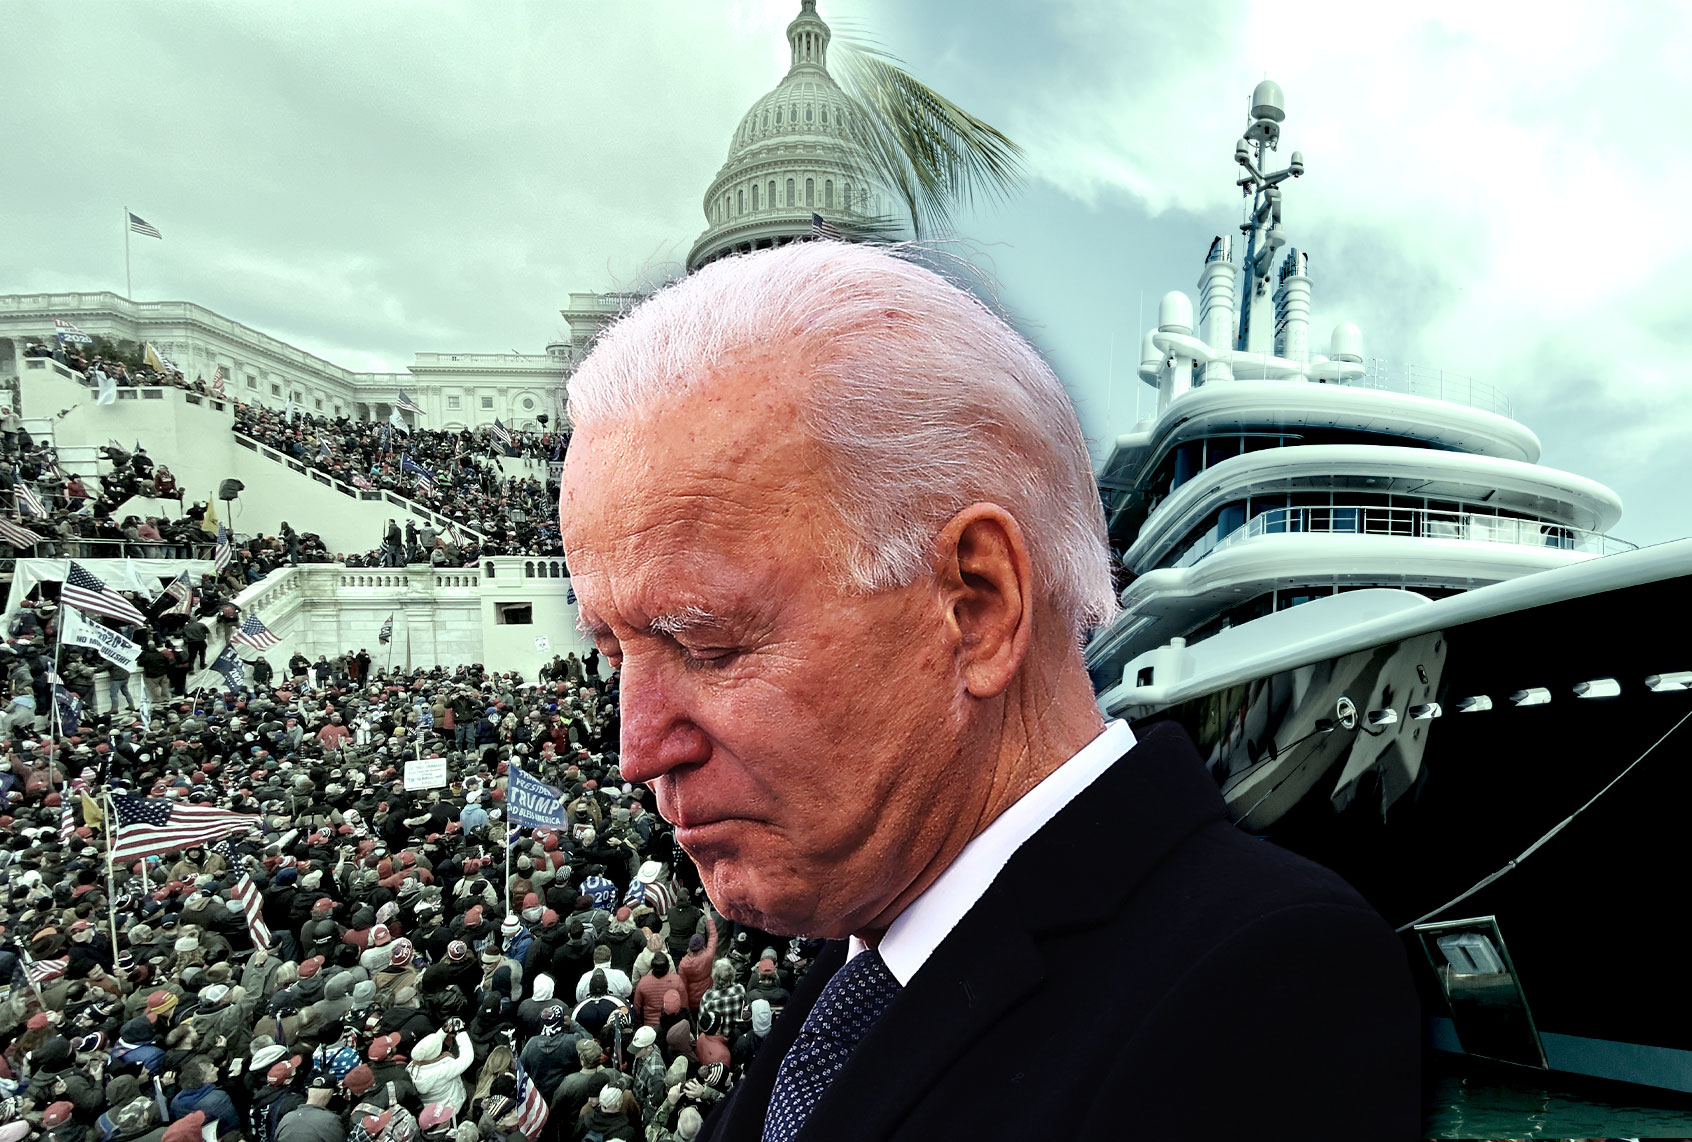 Papering over the rot: Joe Biden's window dressing can't end oligarchy thumbnail